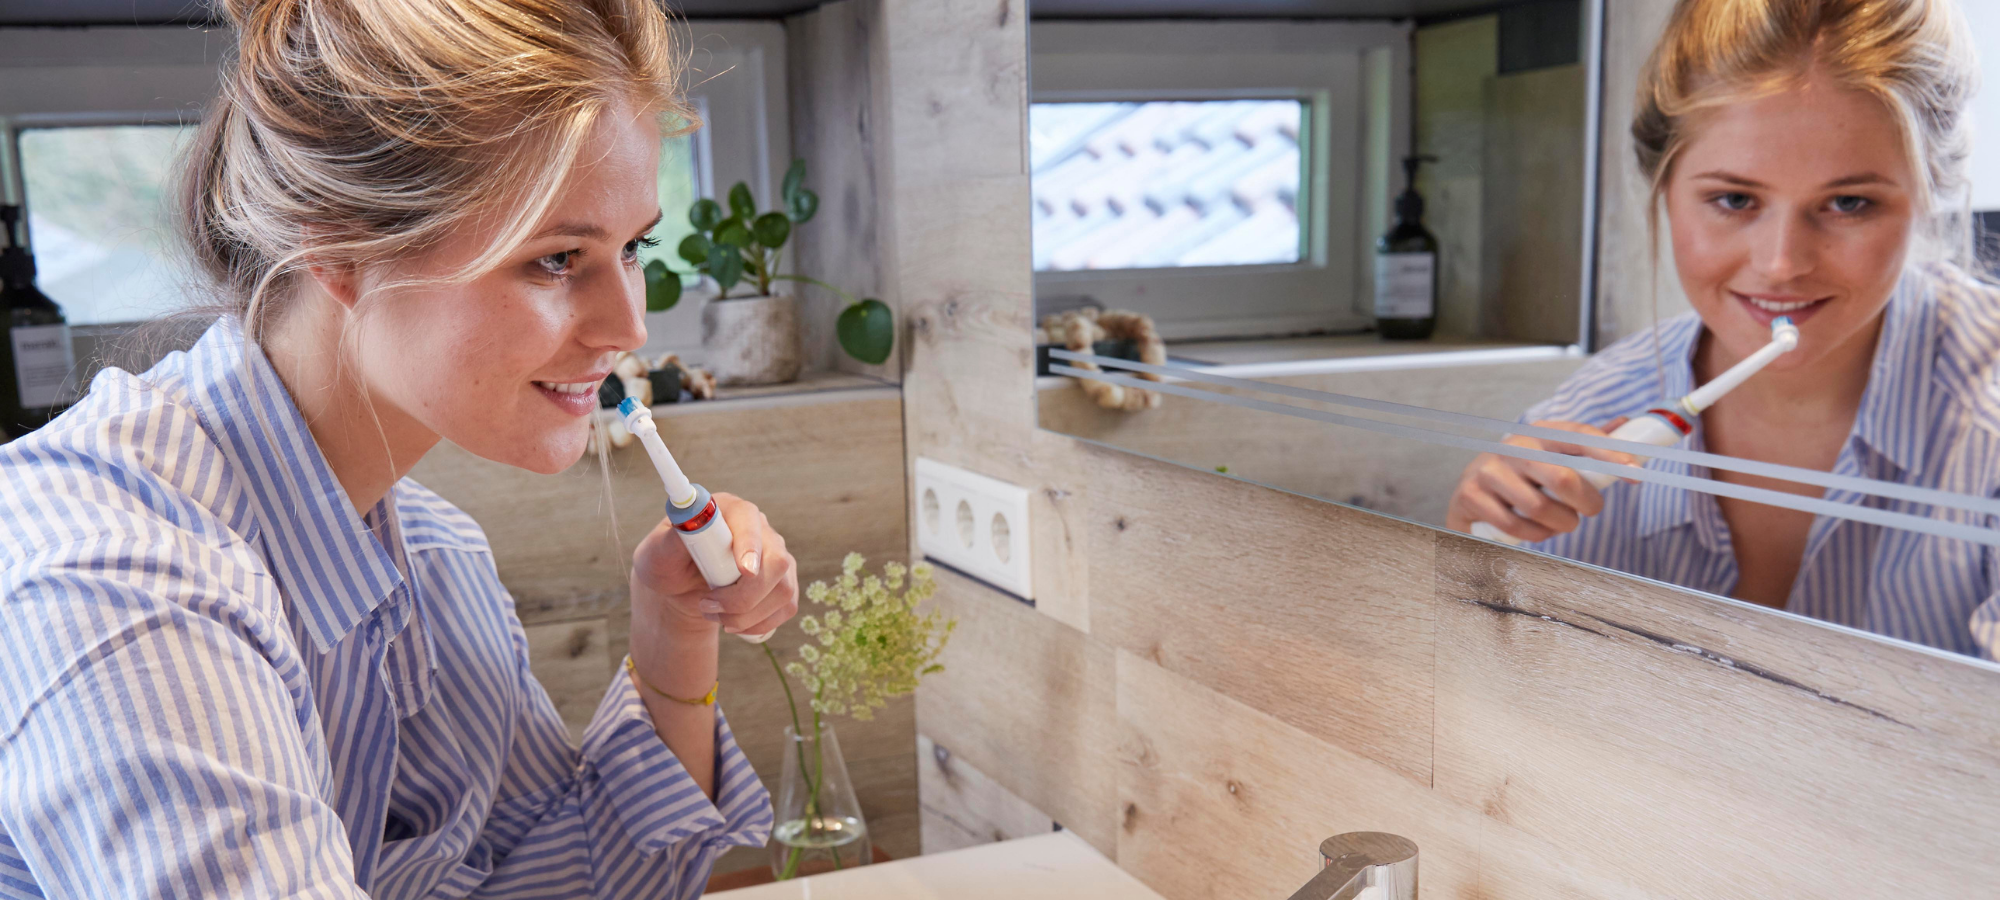 Woman in bathroom brushing teeth properly with bluem